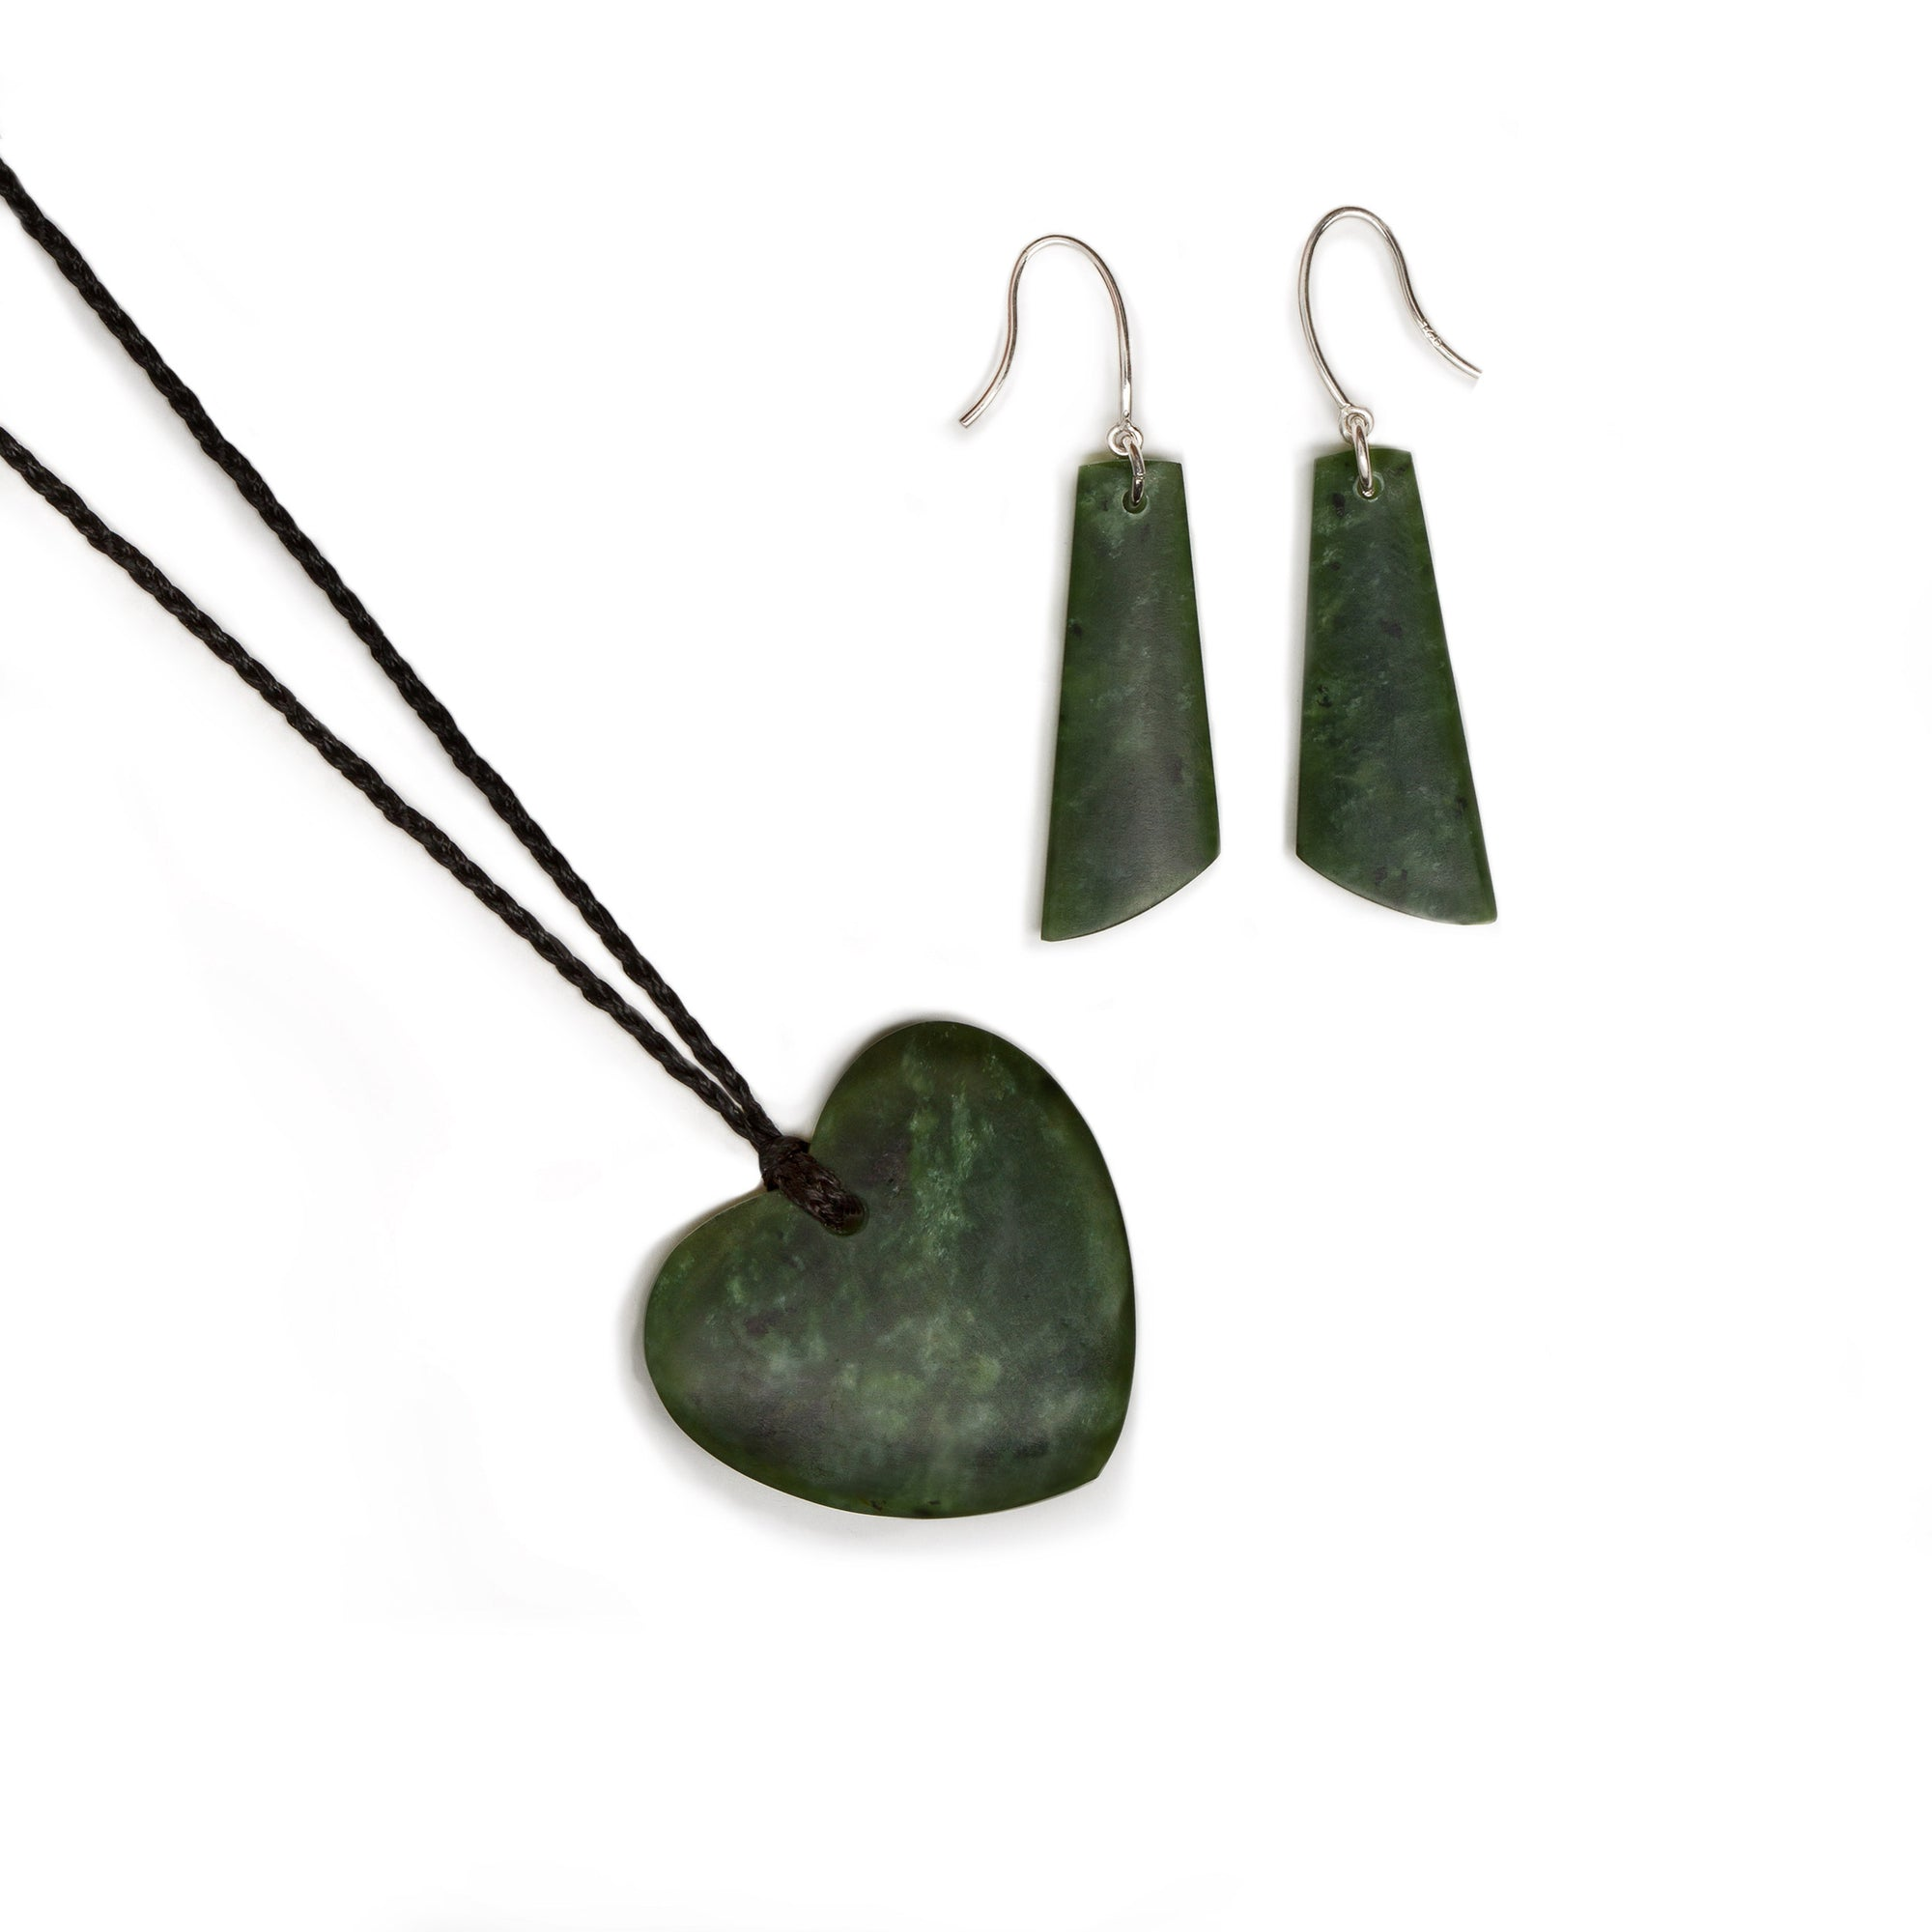 New Zealand Greenstone Heart and Earring Set